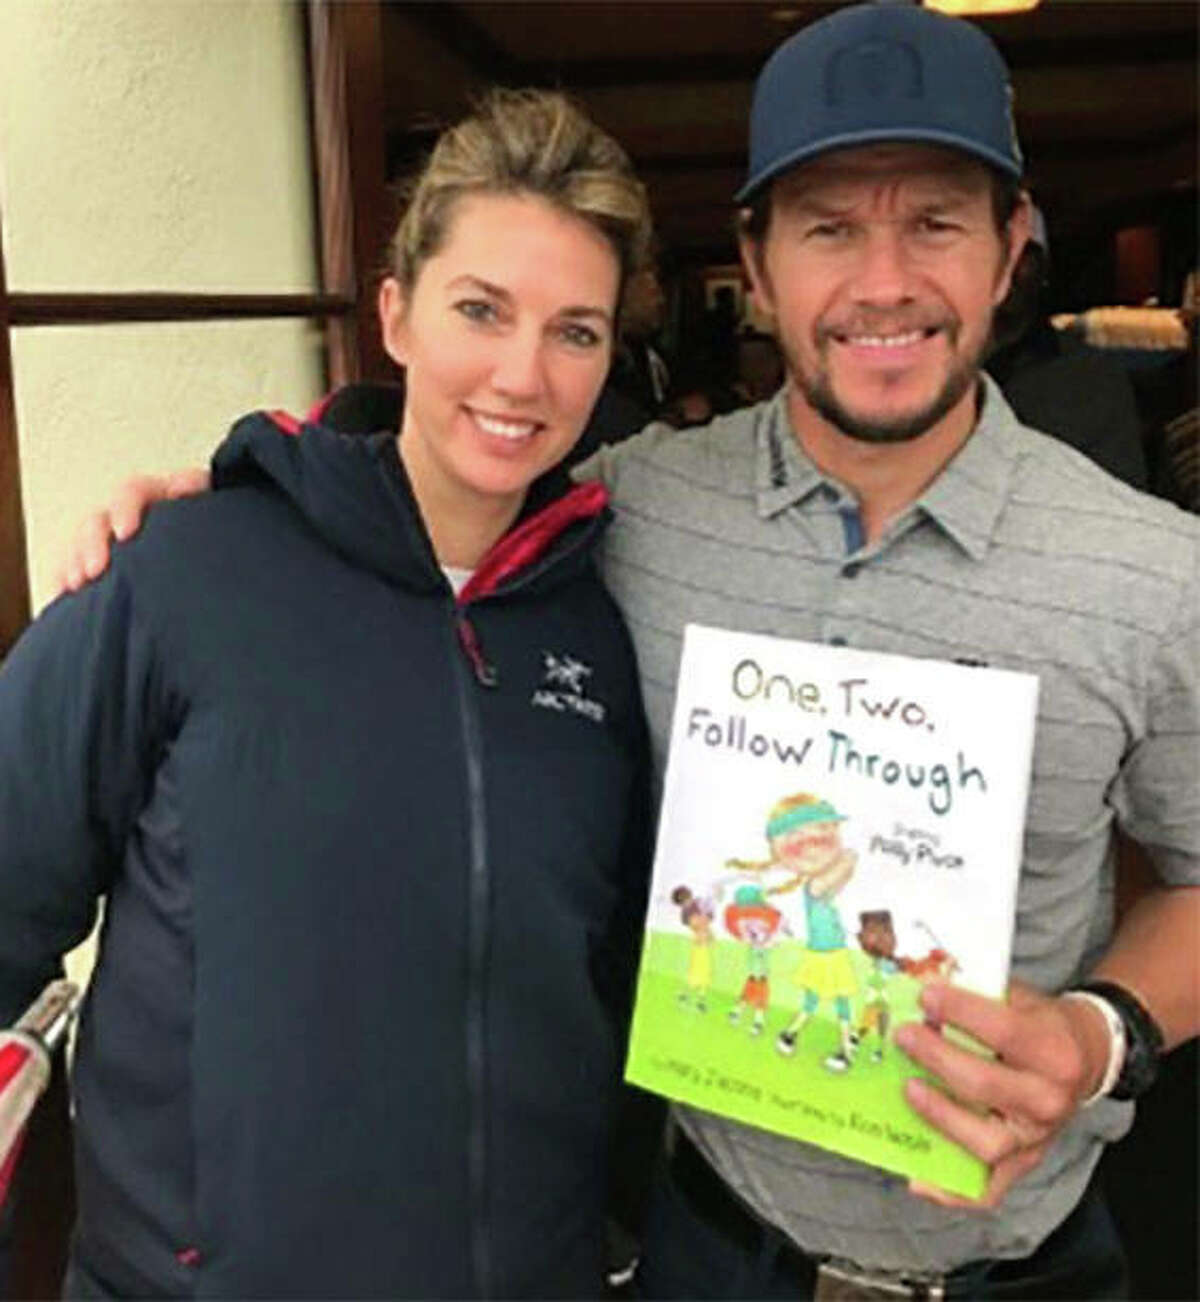 Mary Jacobs (left) poses with actor Mark Wahlberg, who is among the celebrities endorsing Jacobs' new children's book 'One, Two, Follow Through'. Jacobs, a girls golf state champion at Marquette Catholic in 2002, is the golf pro at Wilshire Country Club in Los Angeles and a new author.